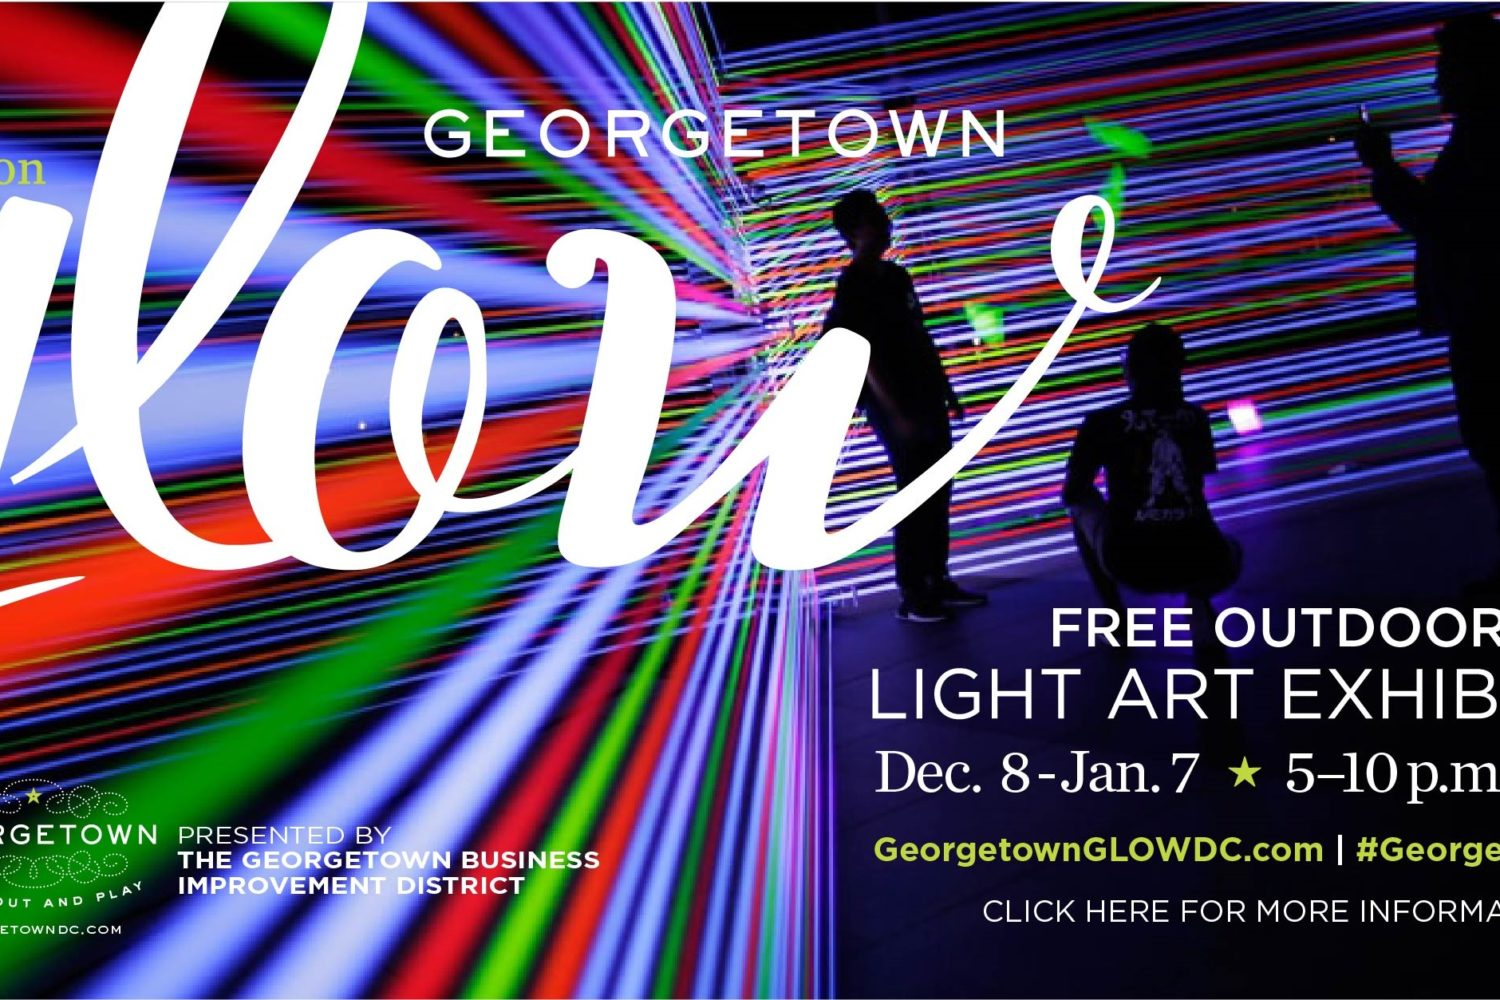 Reimagine the Season of Light at Georgetown GLOW